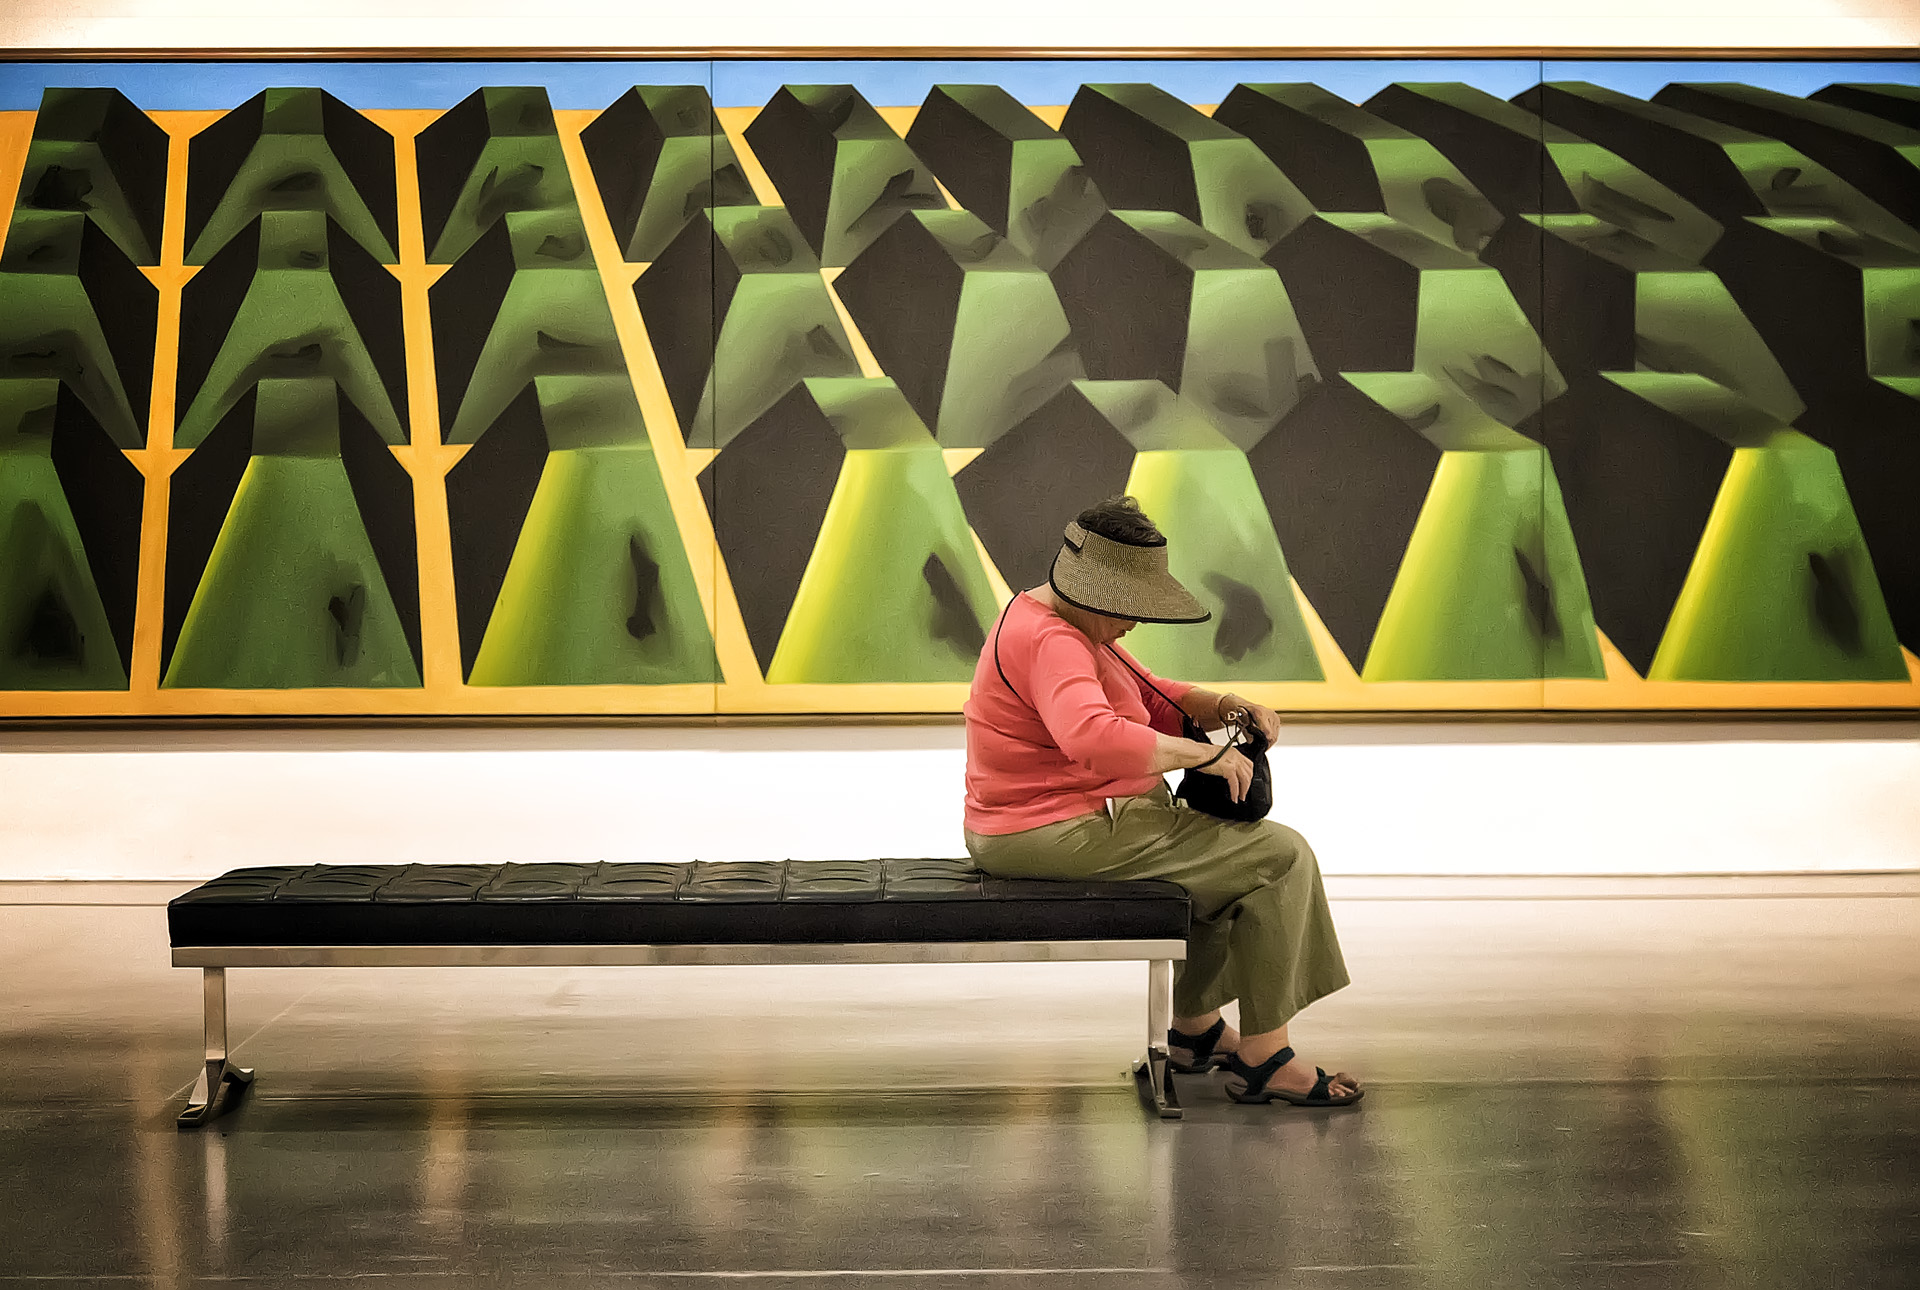 Hirshhorn Museum, July 2017   Gary Anthes  Archival Photograph  $300 (Framed)   Click here to inquire.